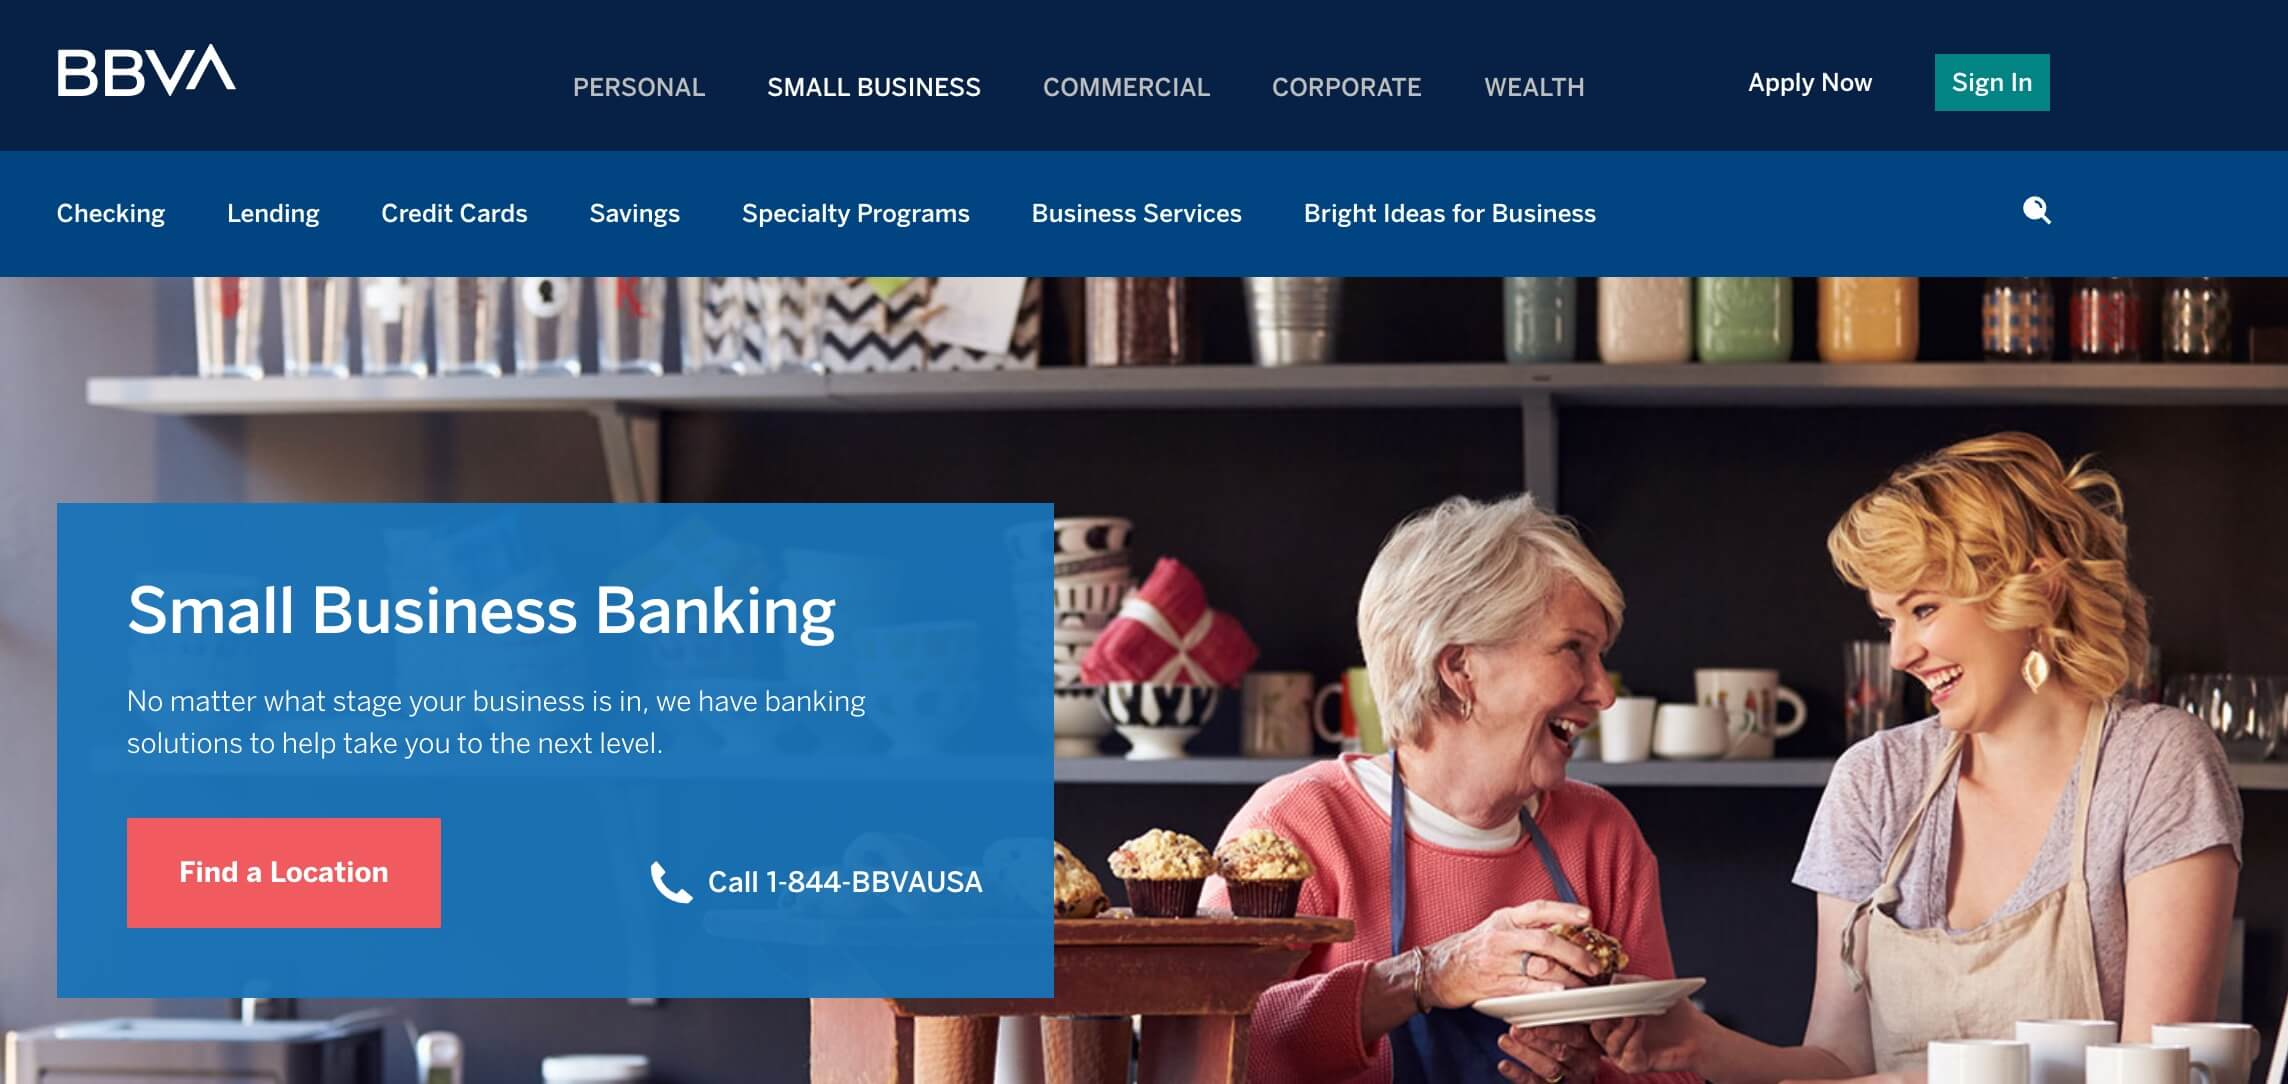 BBVA business banking